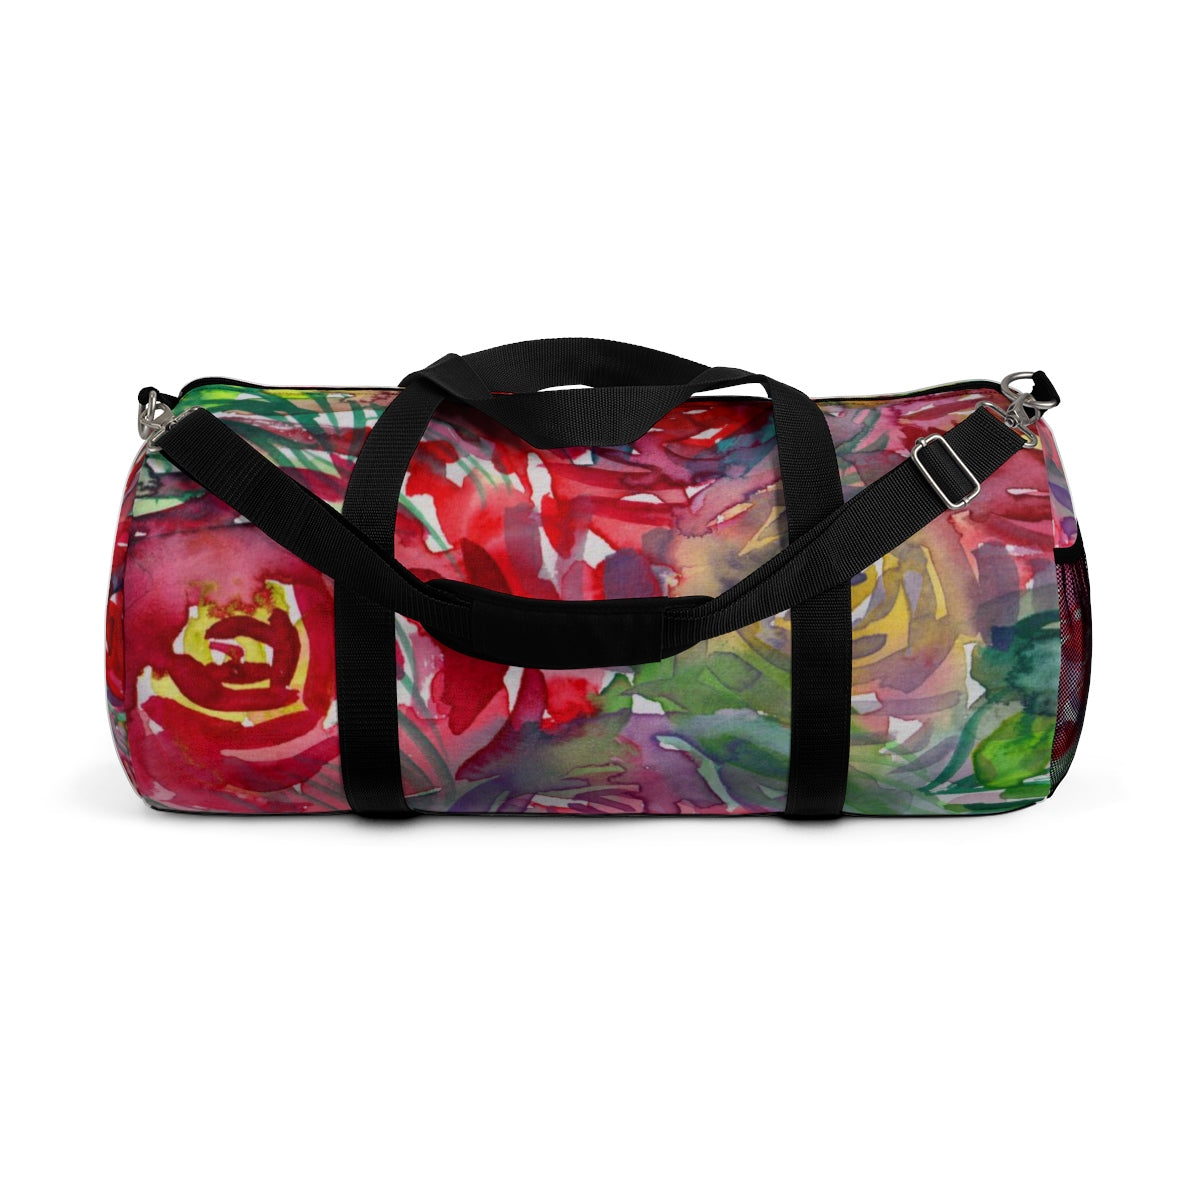 Floral Red Rose Print All Day Small Or Large Size Duffel Bag, Made in USA-Duffel Bag-Small-Heidi Kimura Art LLC